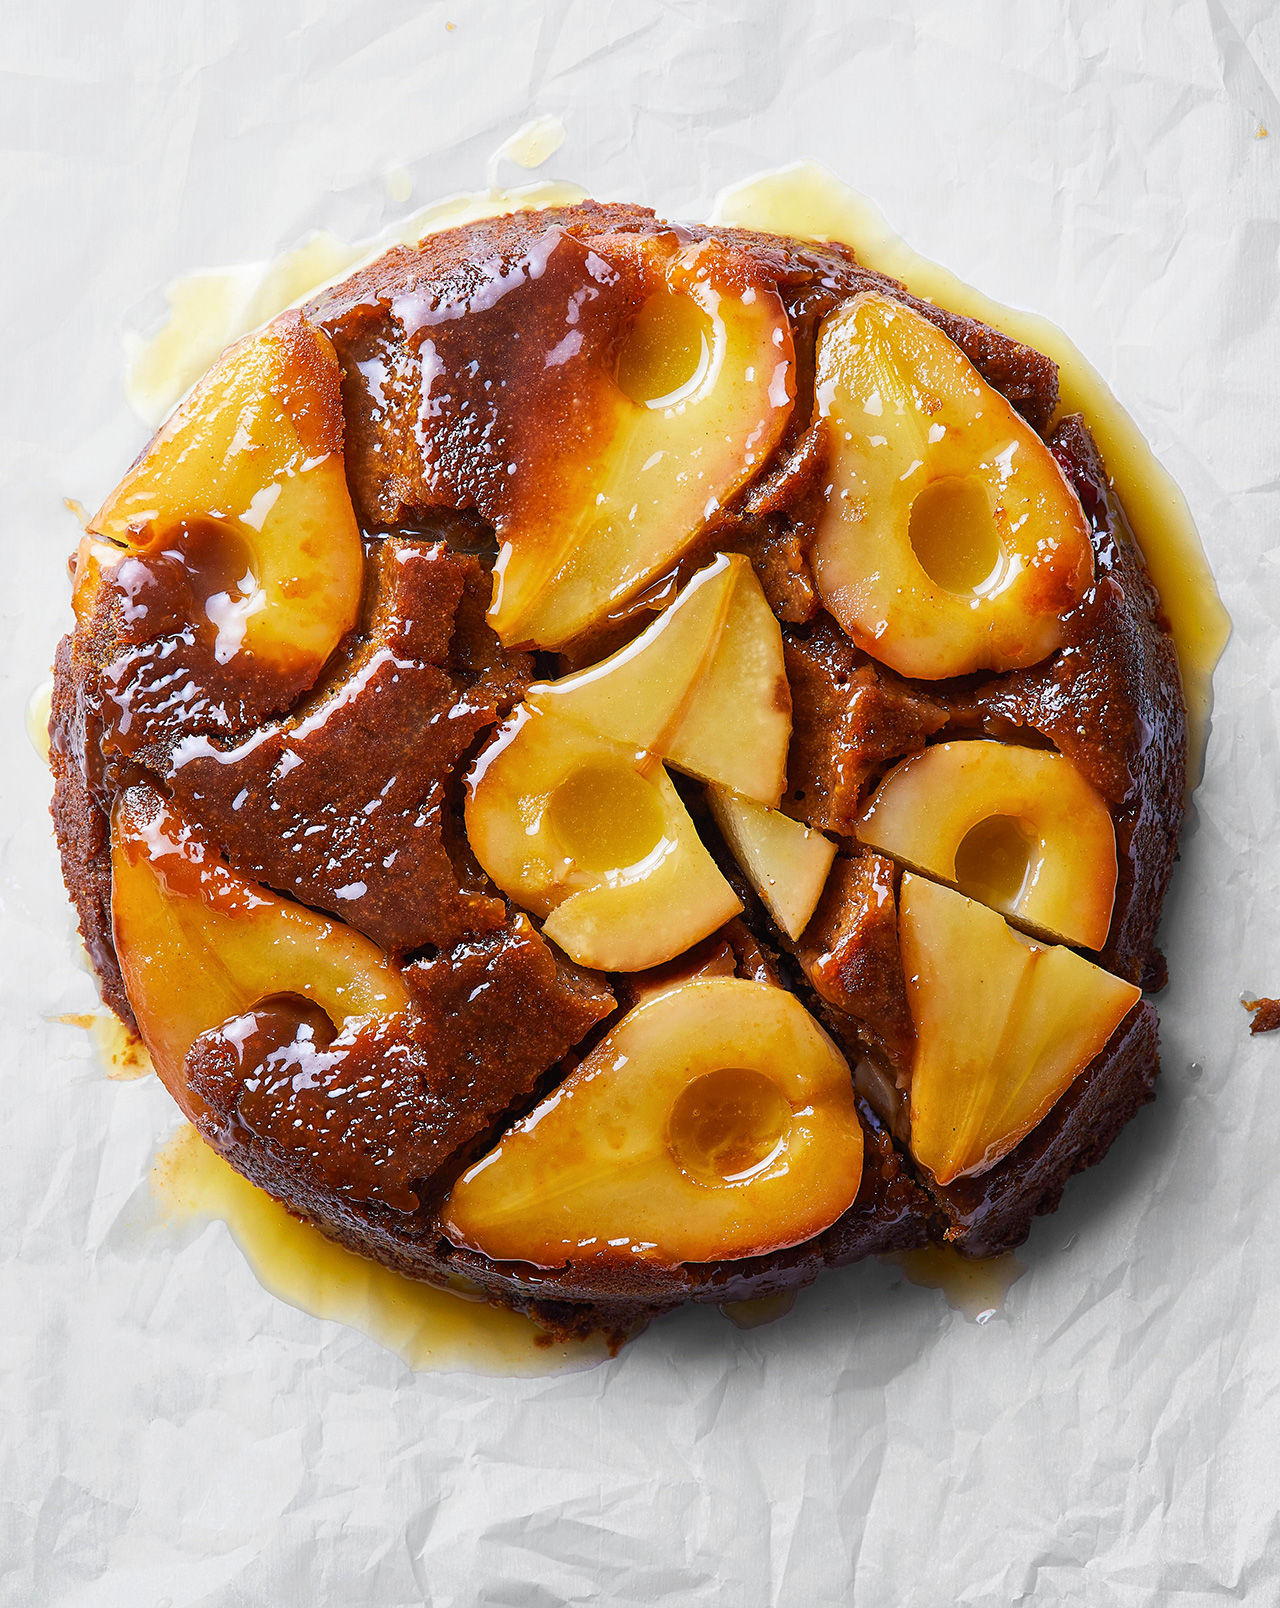 Caramelized Pear Skillet Cake